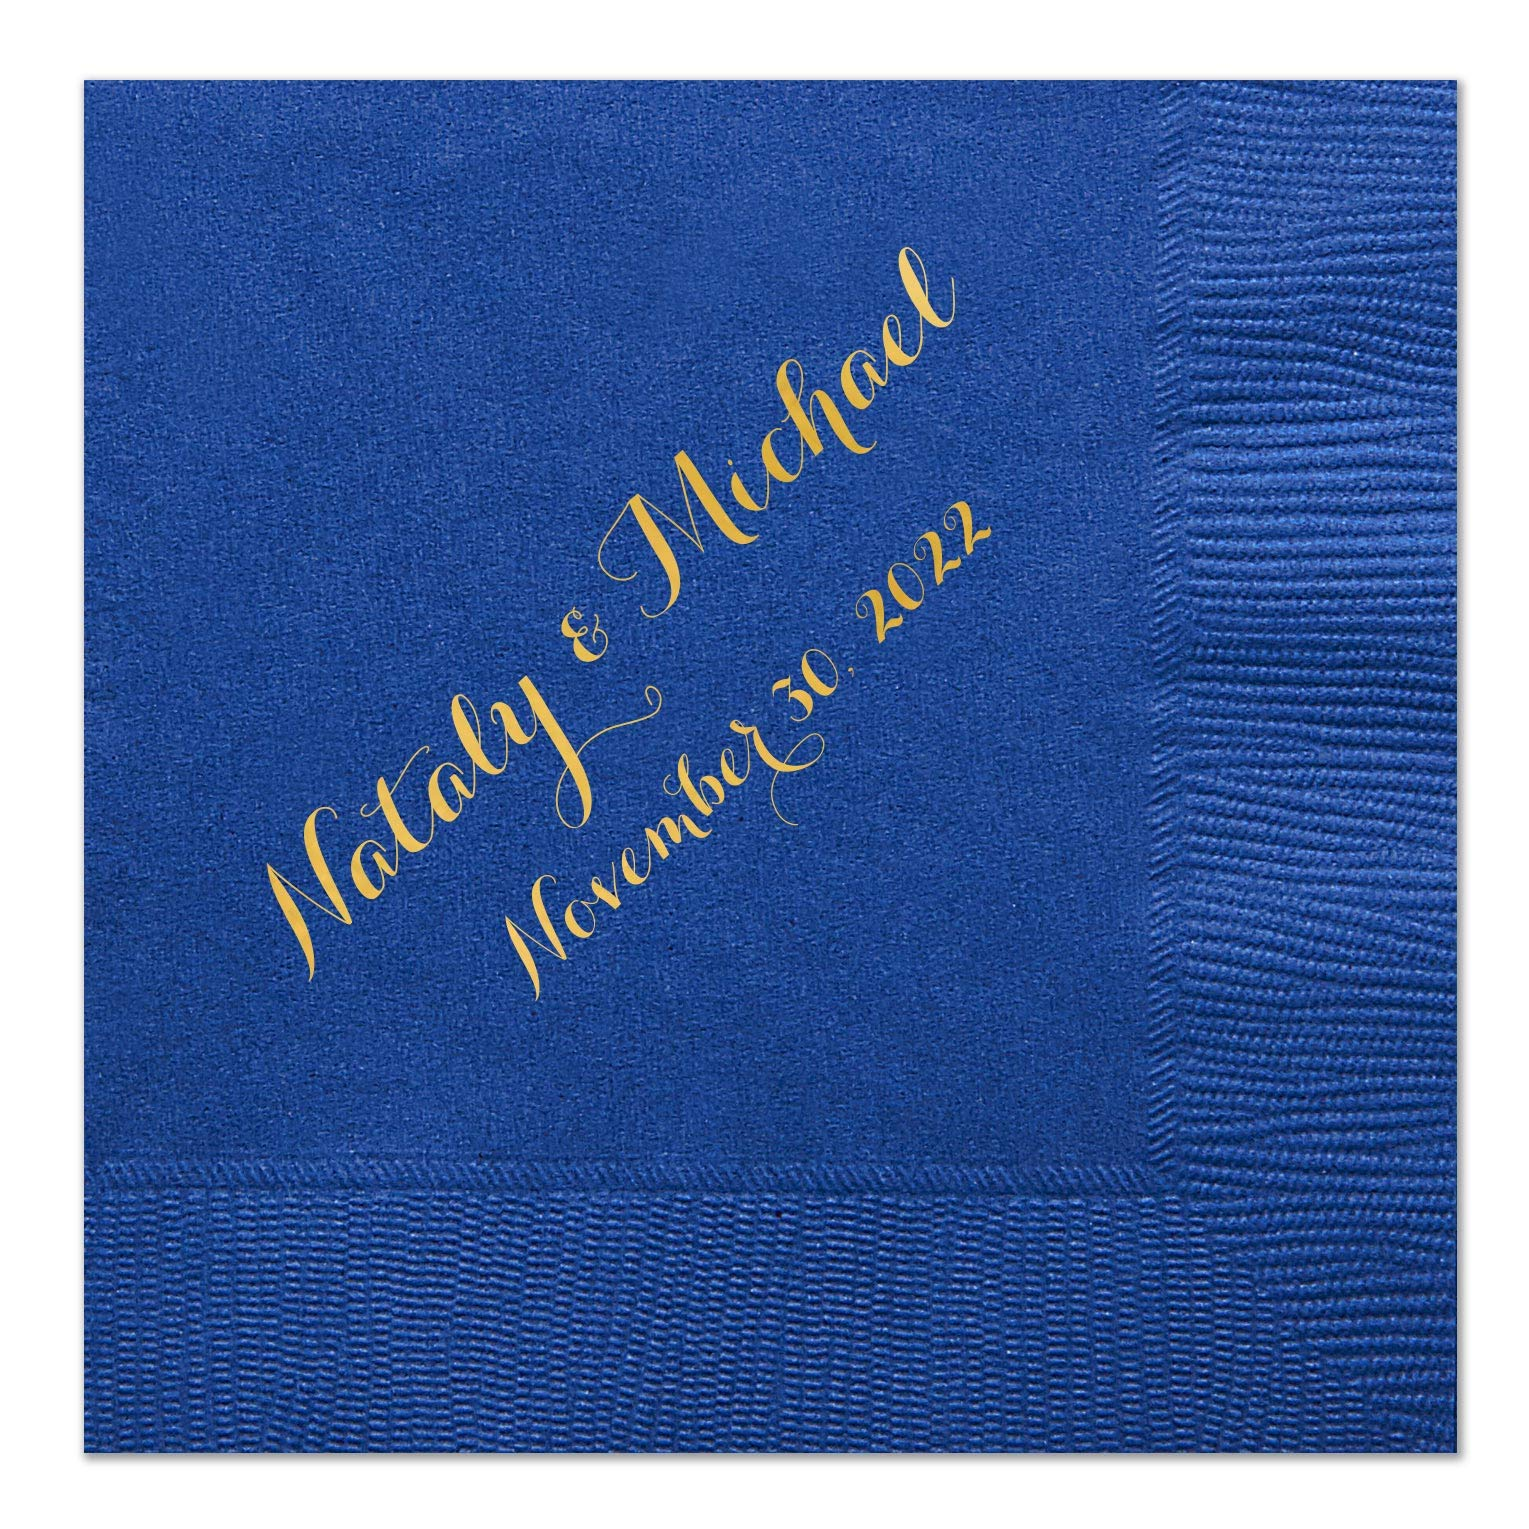 Personalized Wedding Cocktail Napkins with Bride and Grooms Names, 100 Custom Wedding Napkins by ForYourParty